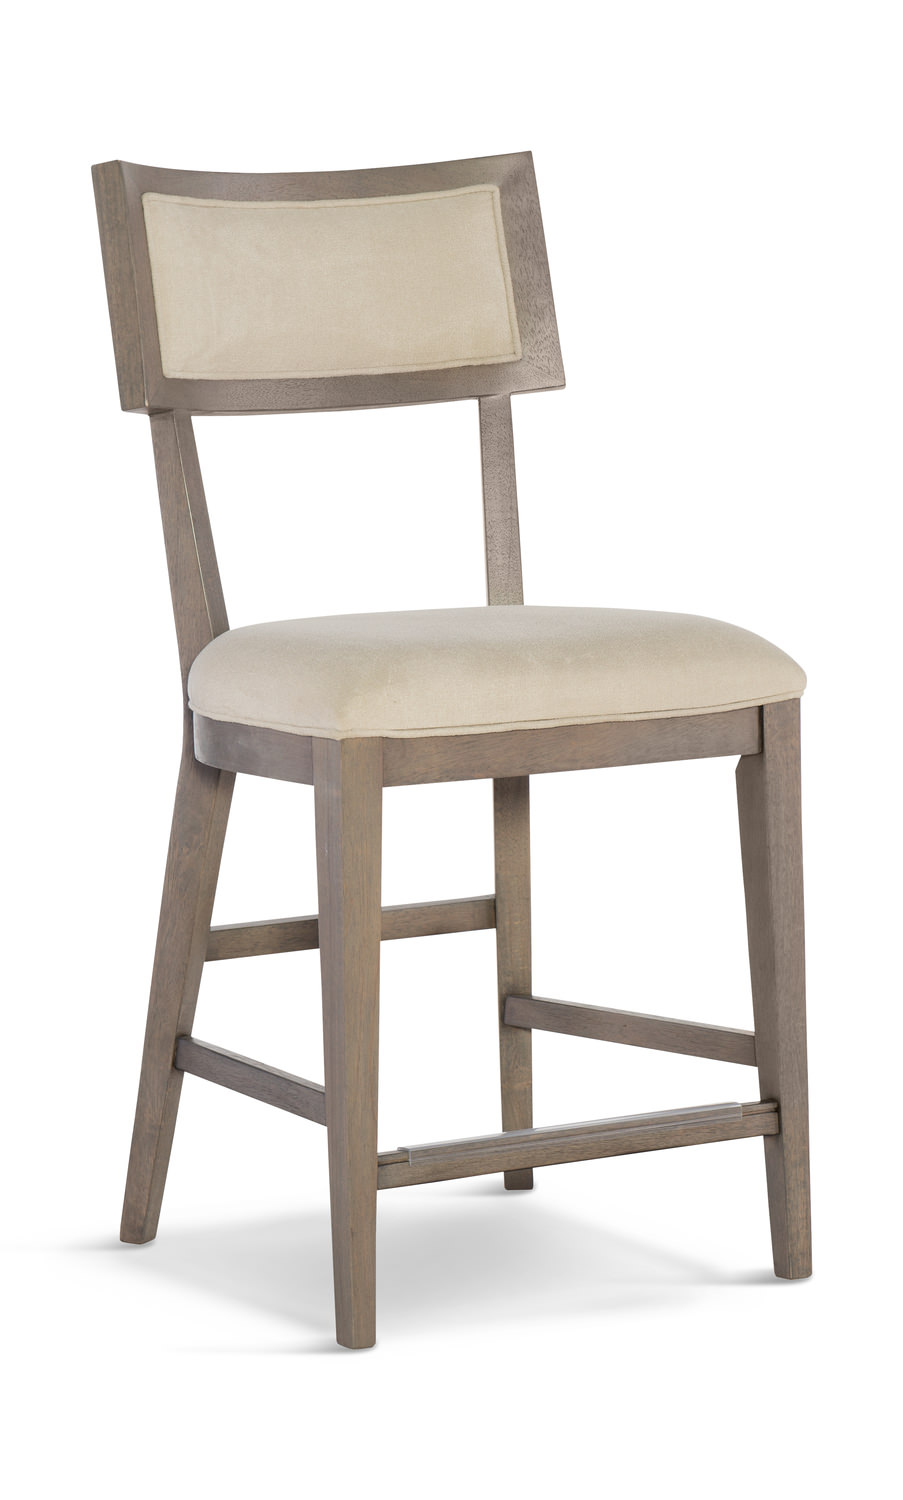 Highline Counter Stool By Rachael Ray Hom Furniture